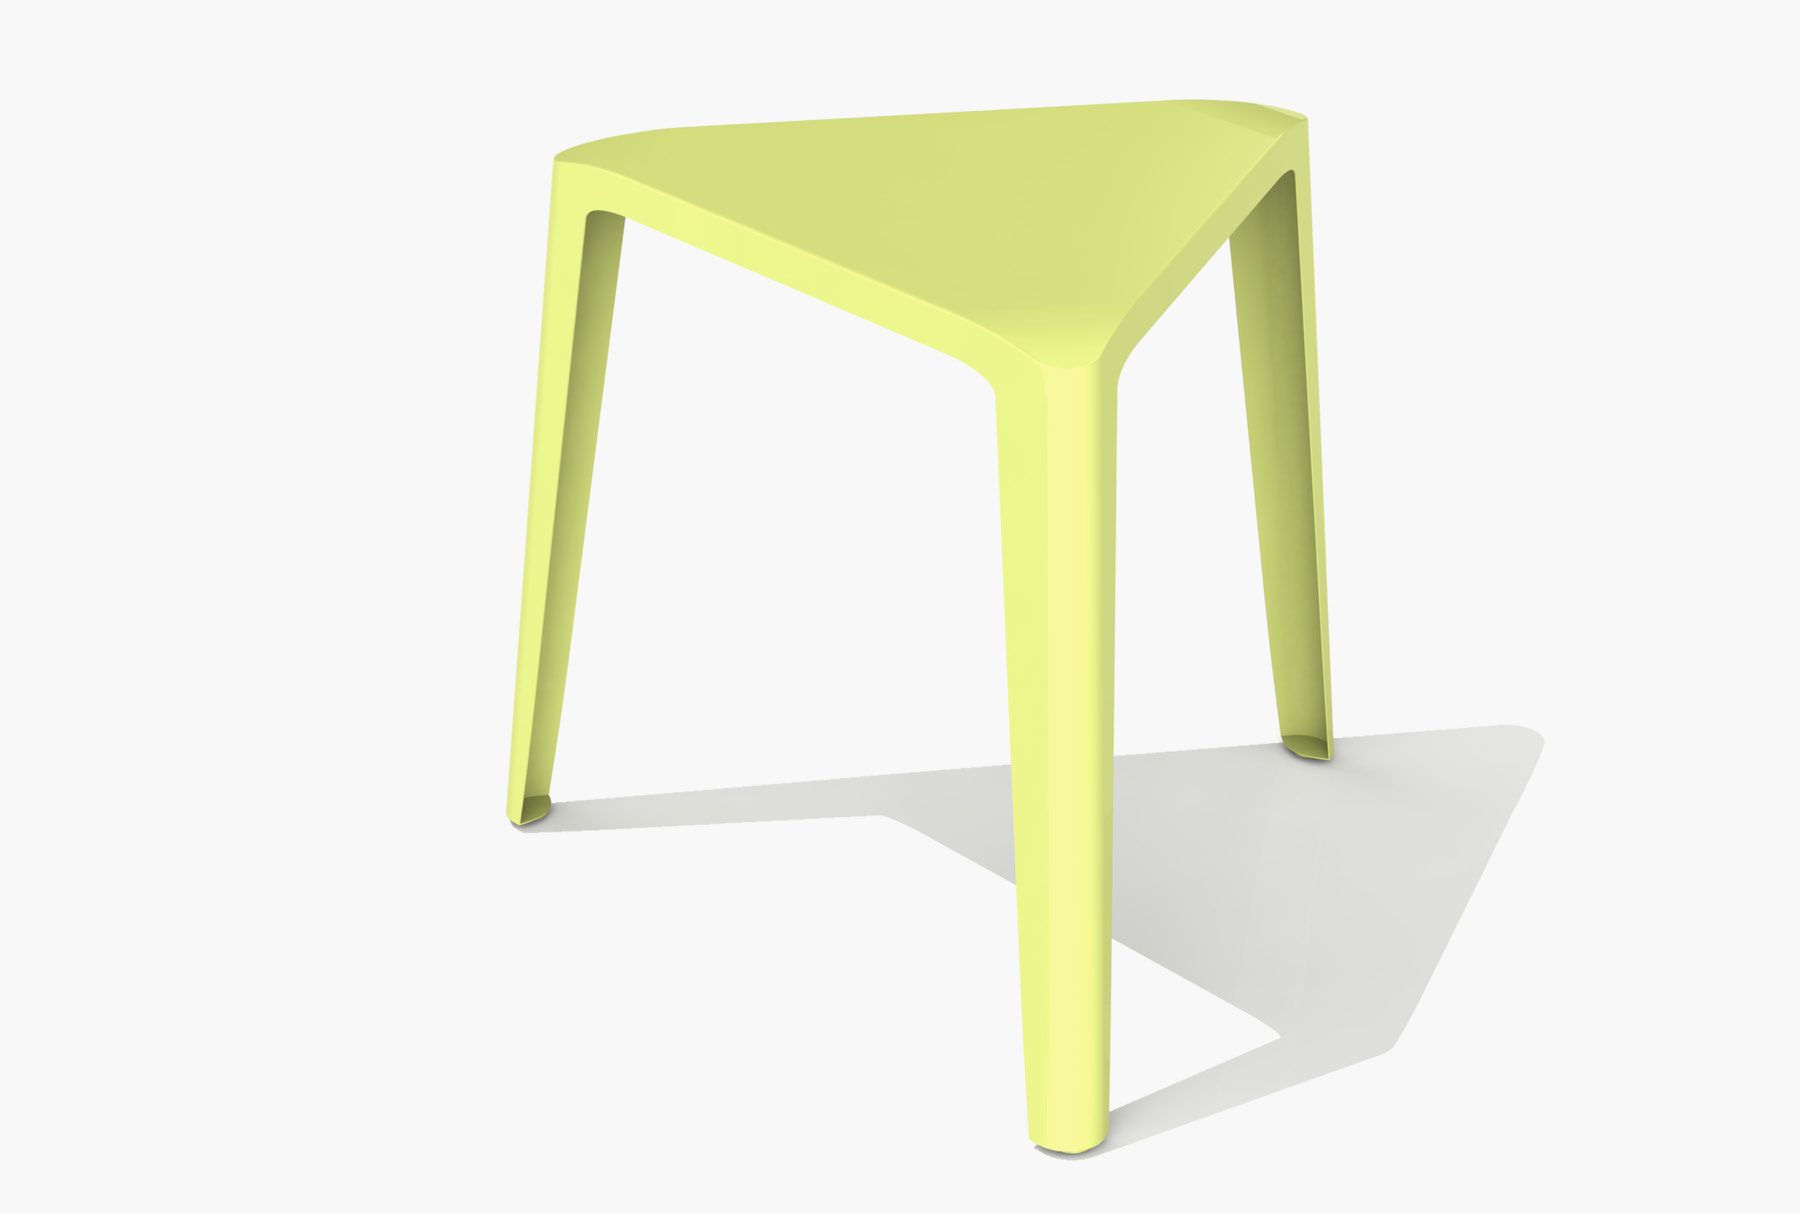 Arktura Clic Low Stool in Lush Green